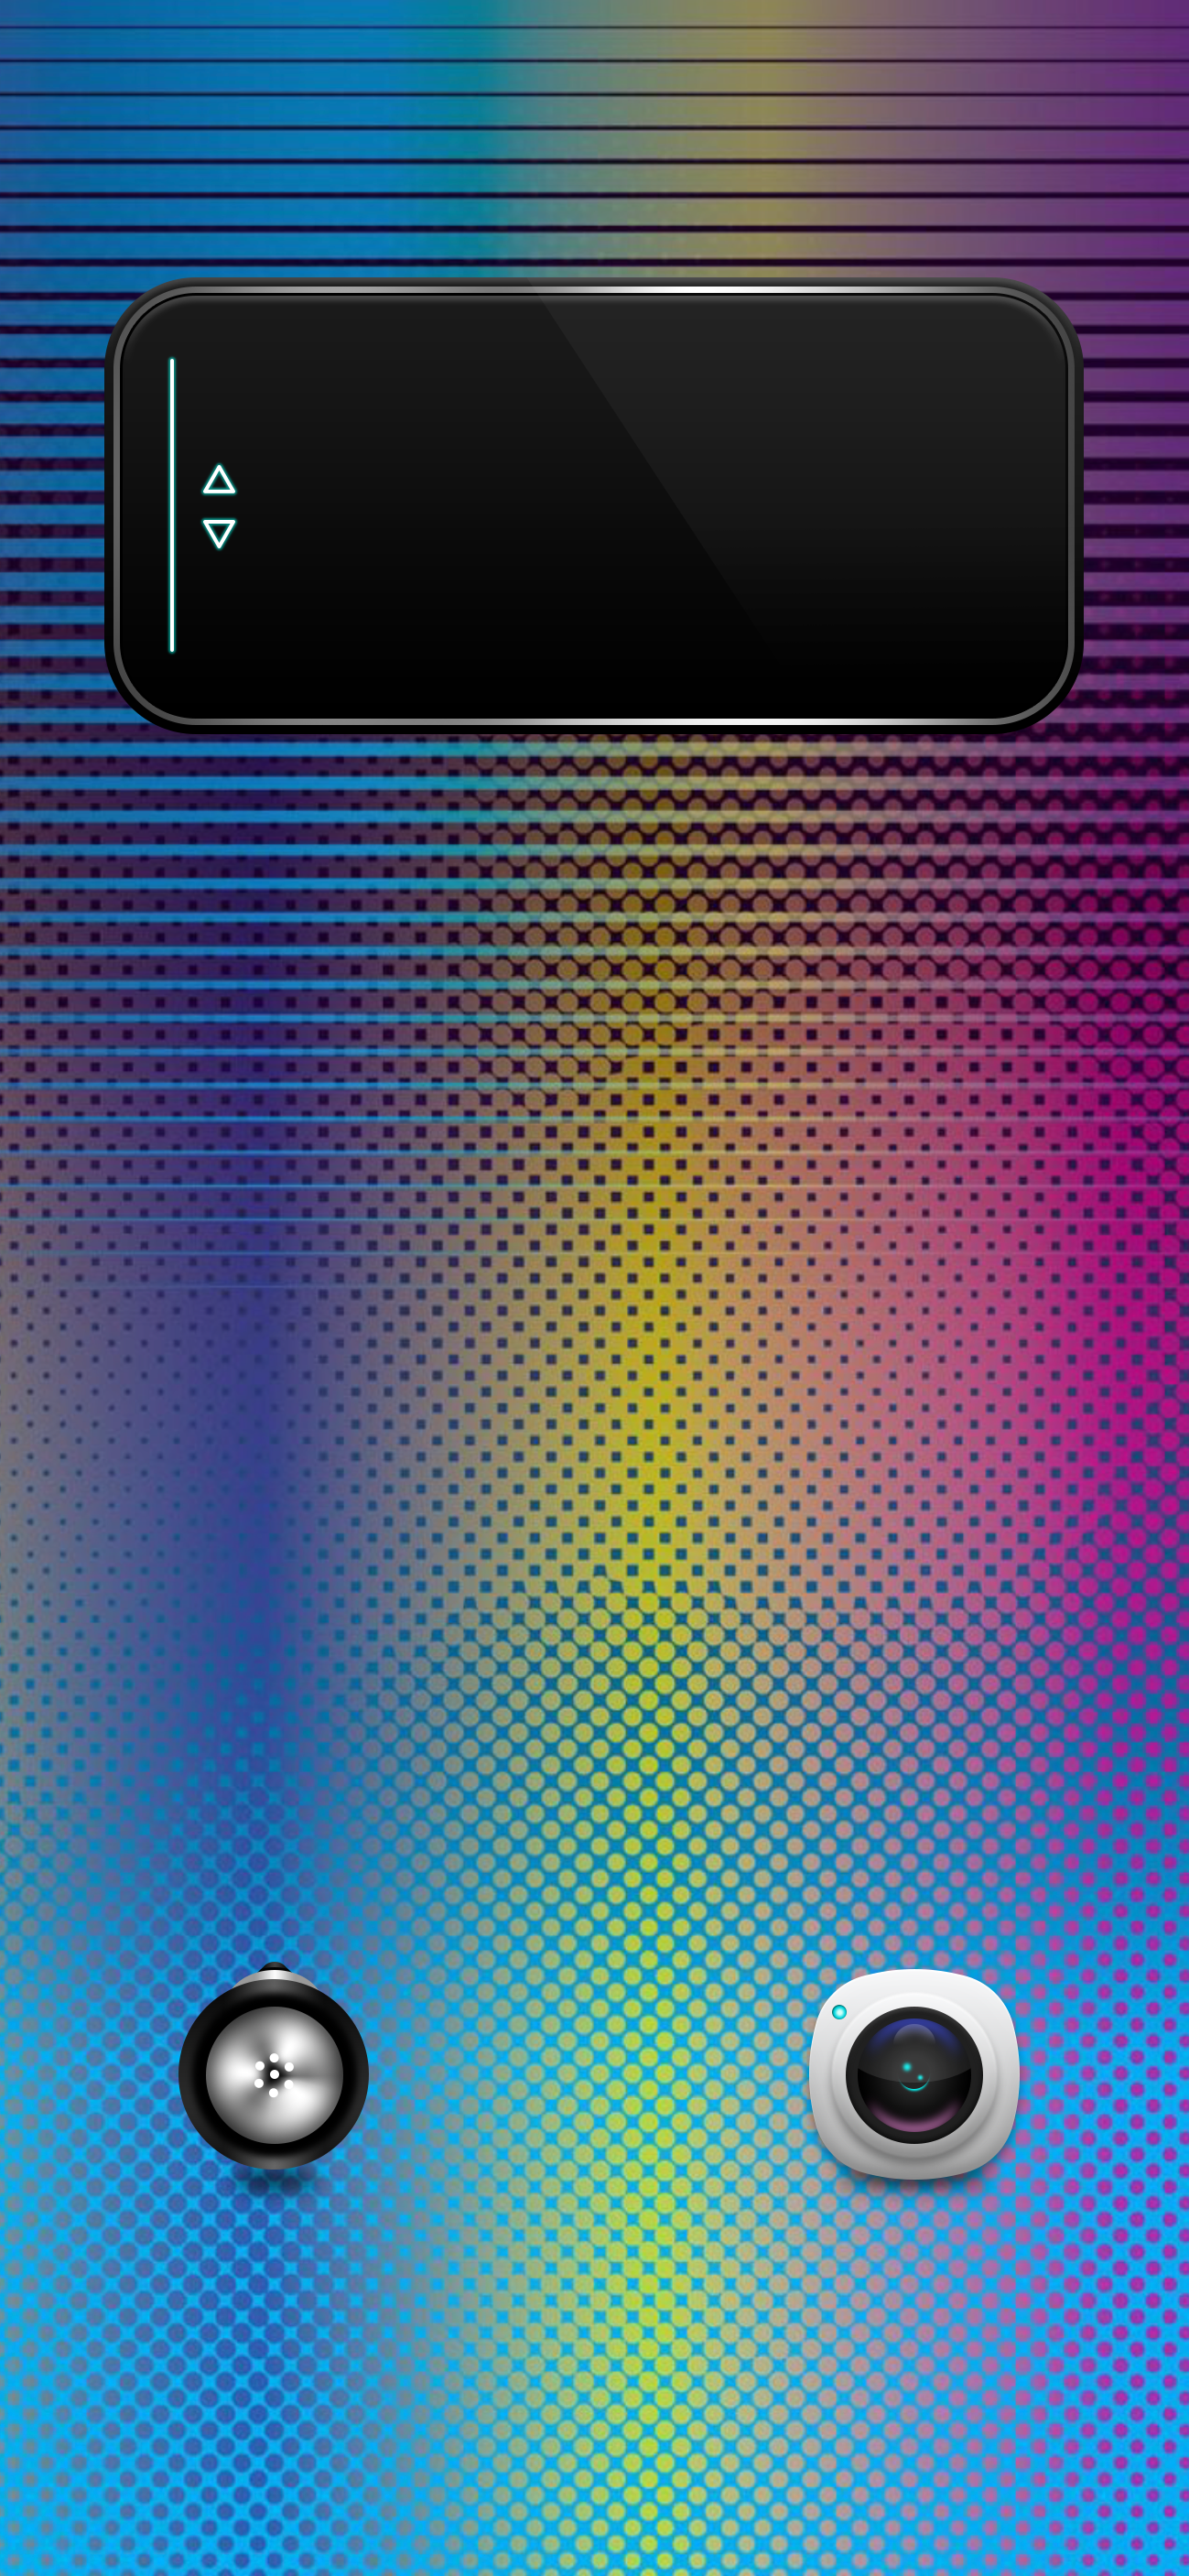 Wallpaper Iphone X Wall Ix